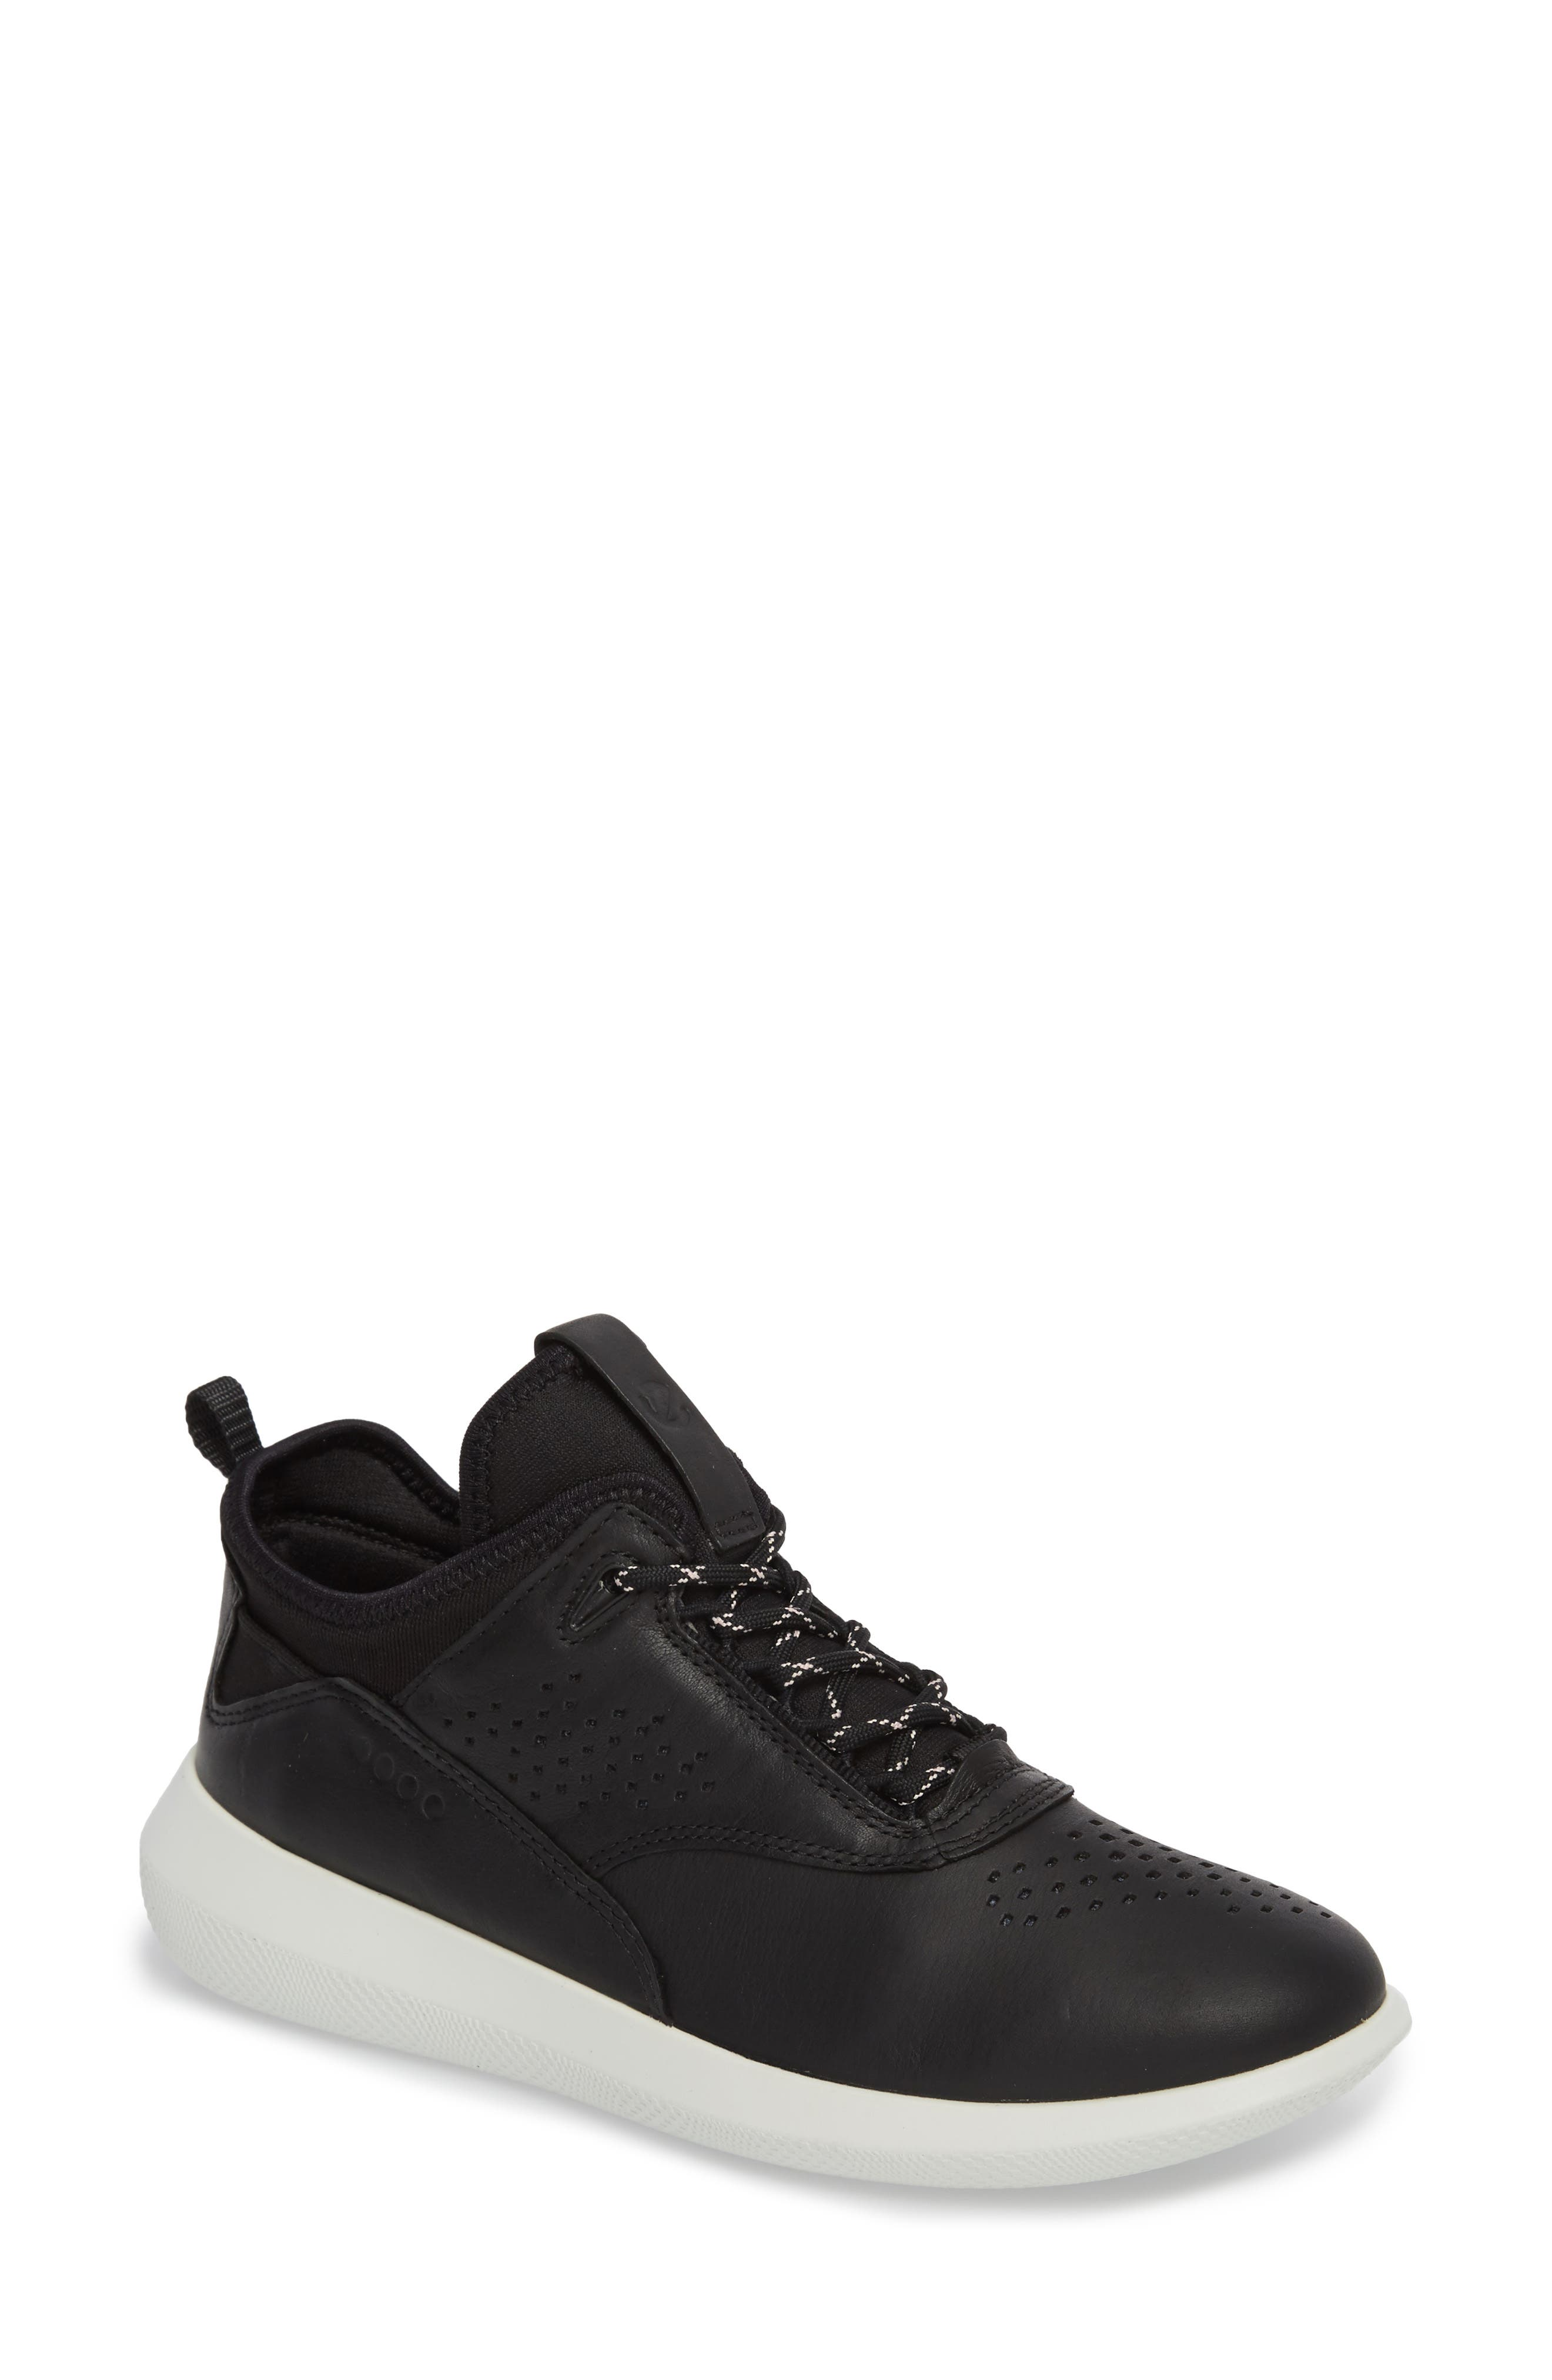 Scinapse Sneaker,                         Main,                         color, Black Leather